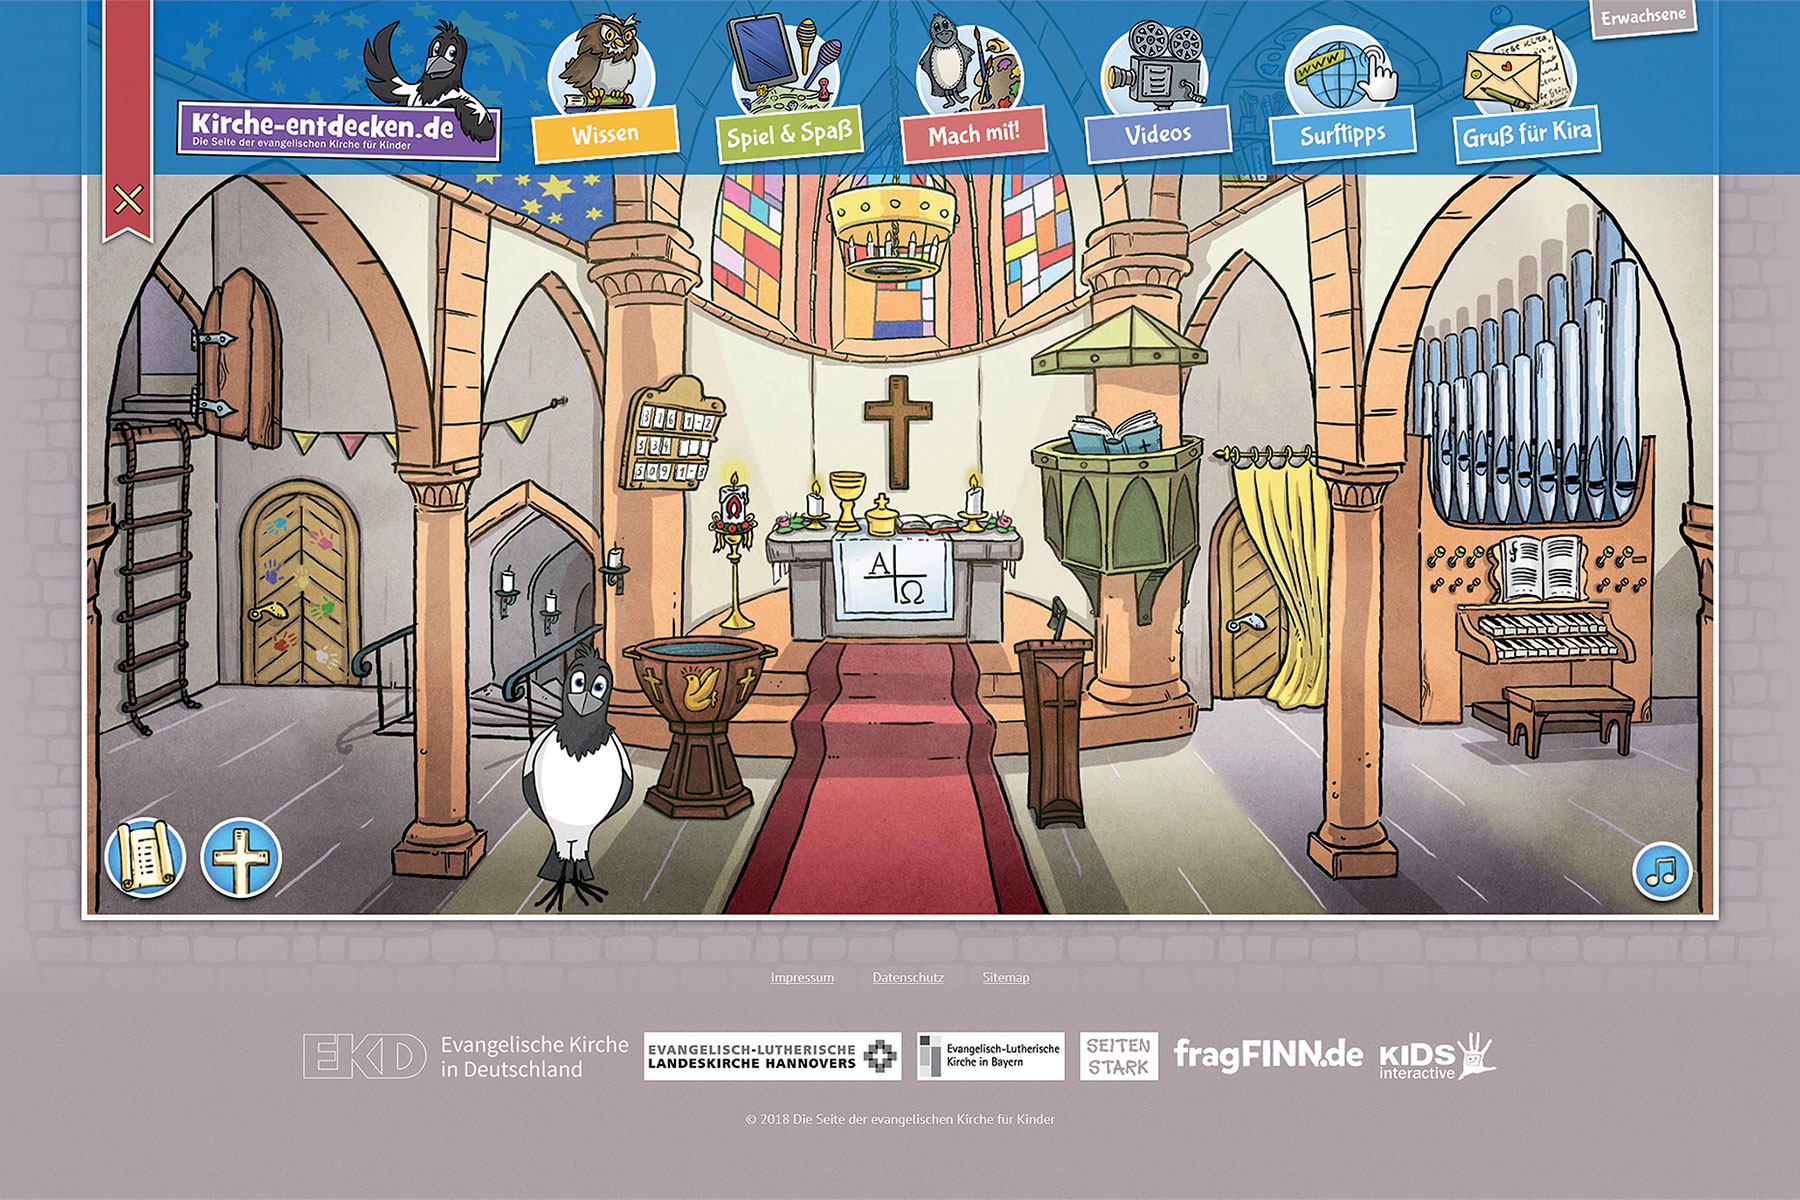 Kira the Magpie invites girls and boys to discover various parts of the church.